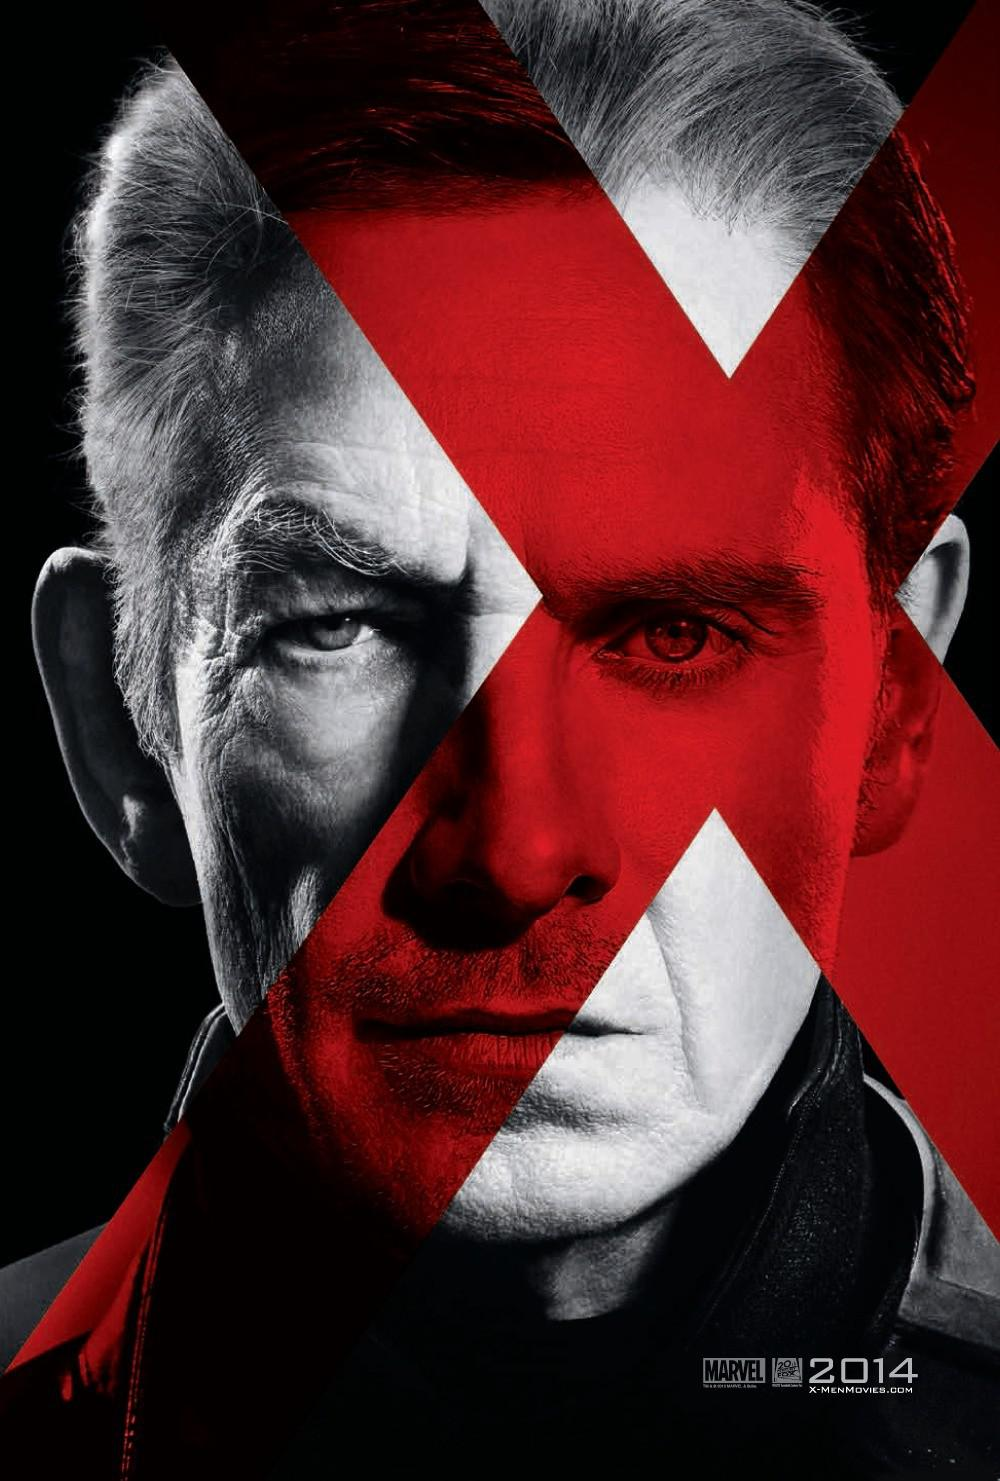 X-Men 6 - X Men Giorni di un Futuro Passato - Days of Future Past - young Magneto (Michael Fassbender) - old Magneto (Ian McKellen)